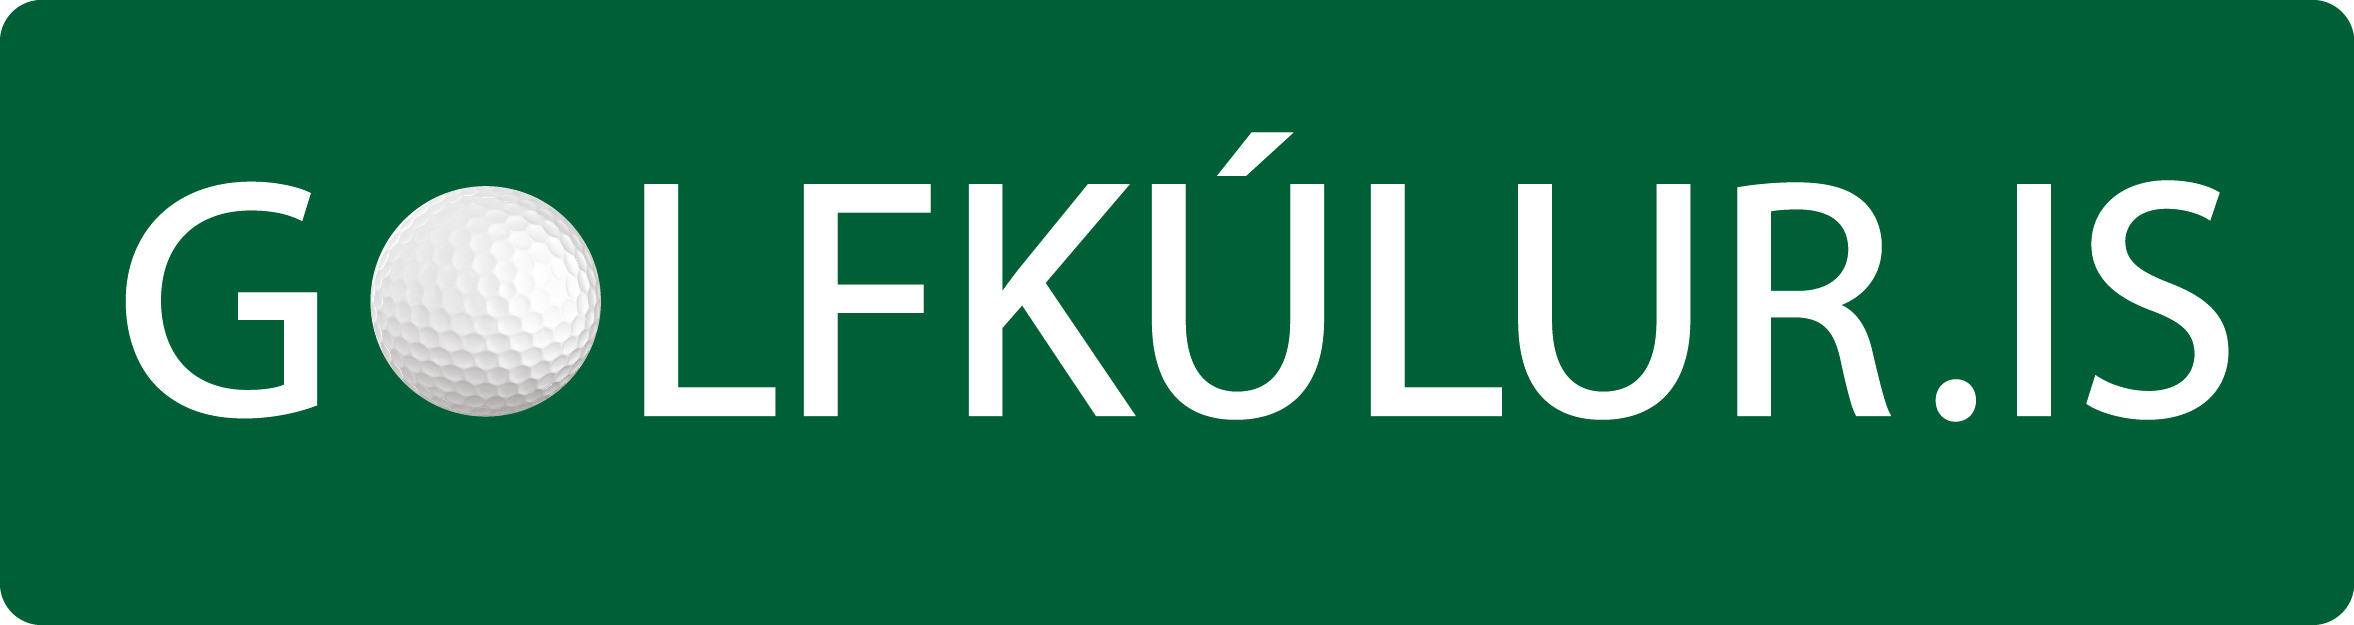 Golfkúlur.is